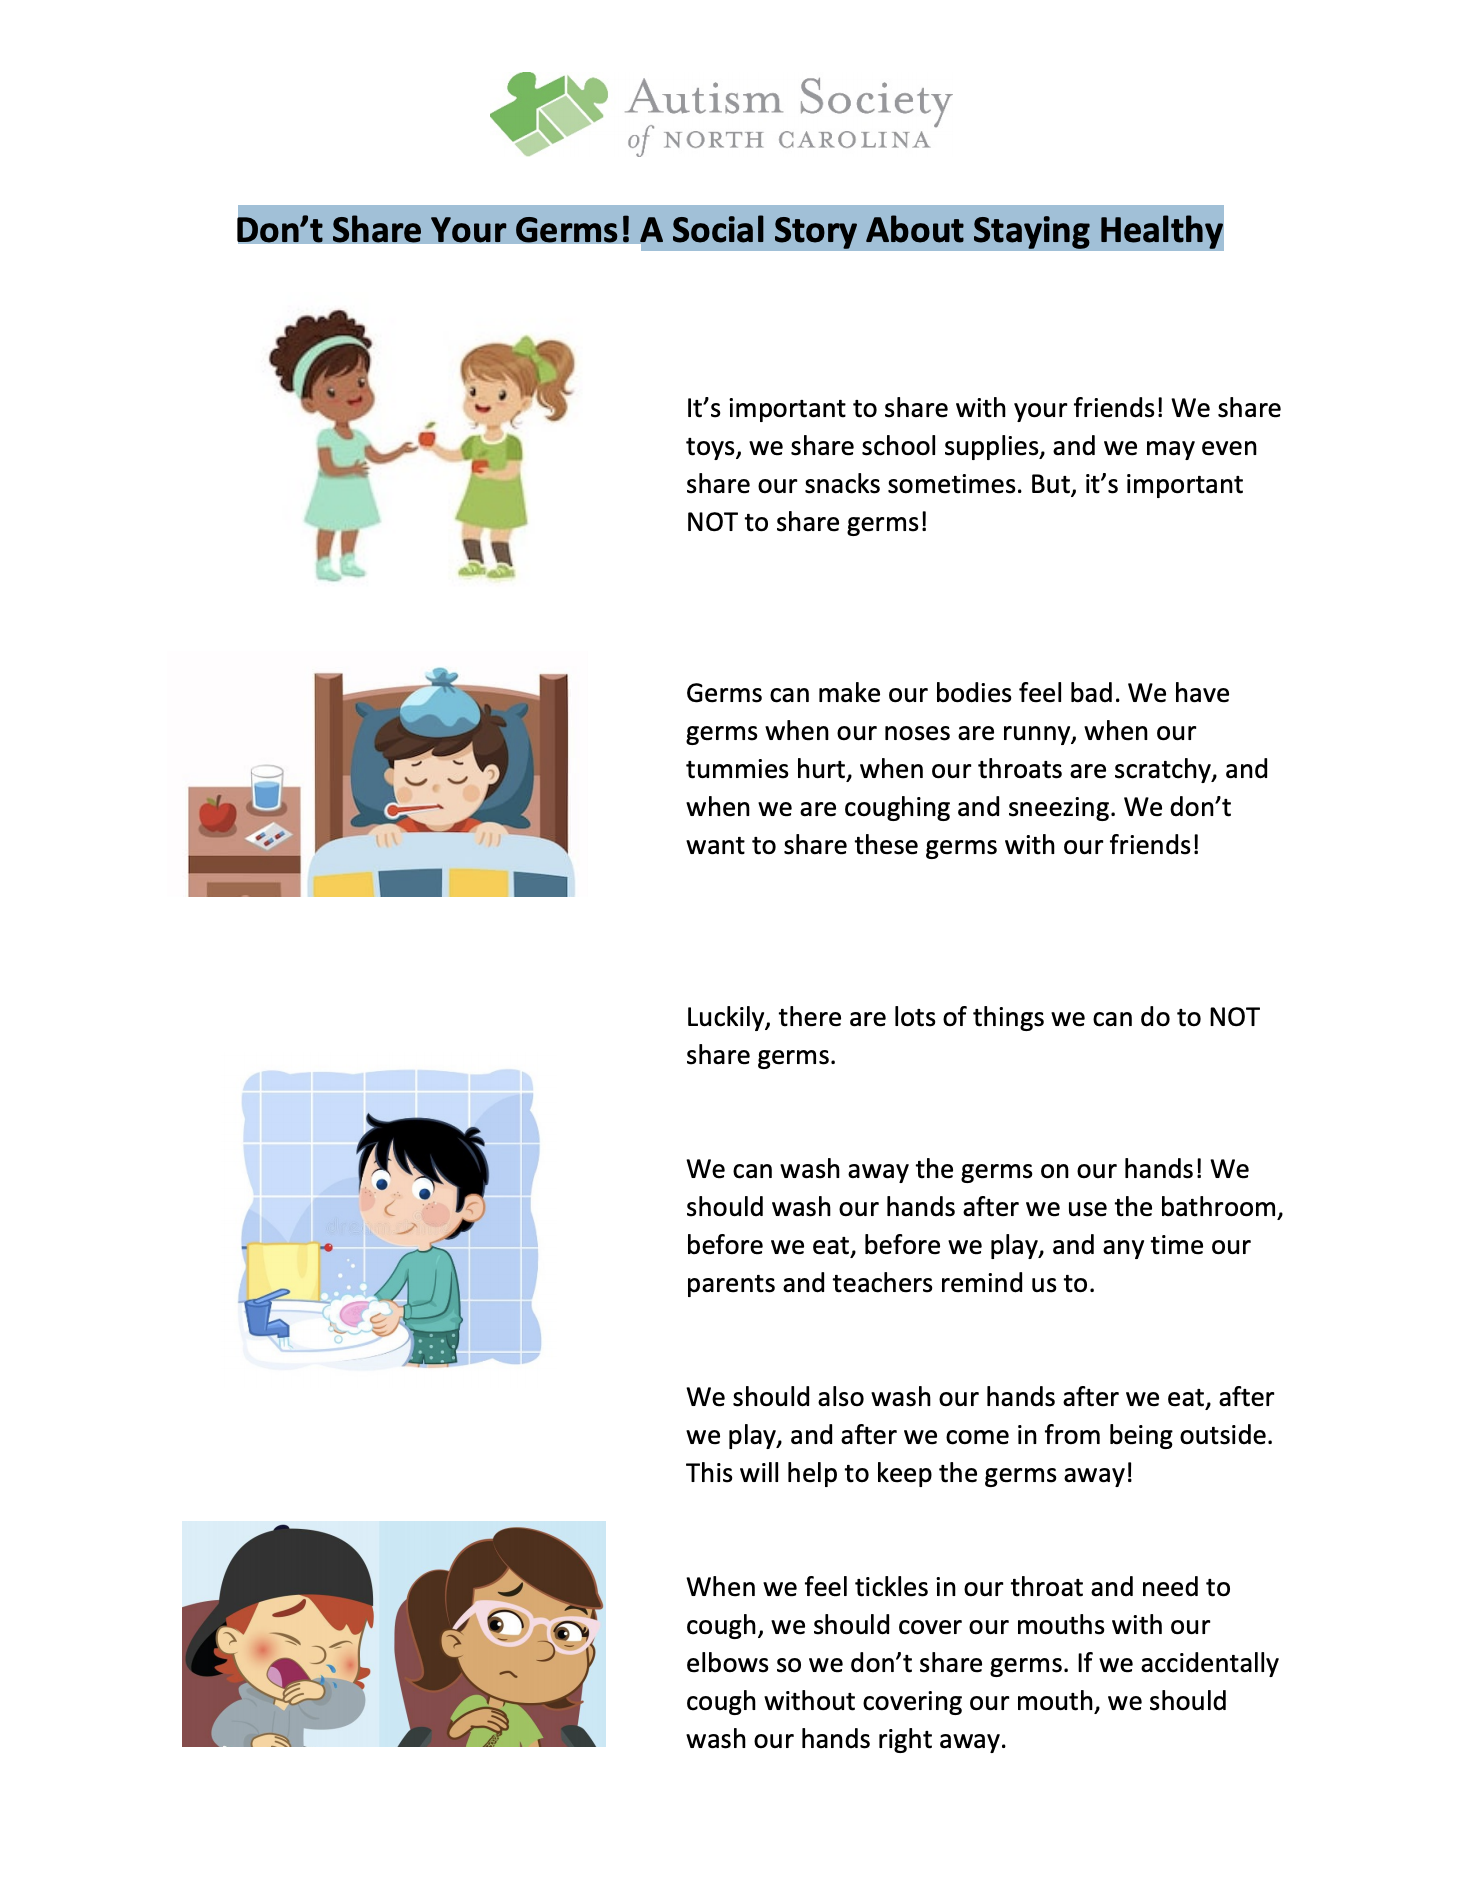 Don't Share Your Germs! A Social Story About Staying Healthy